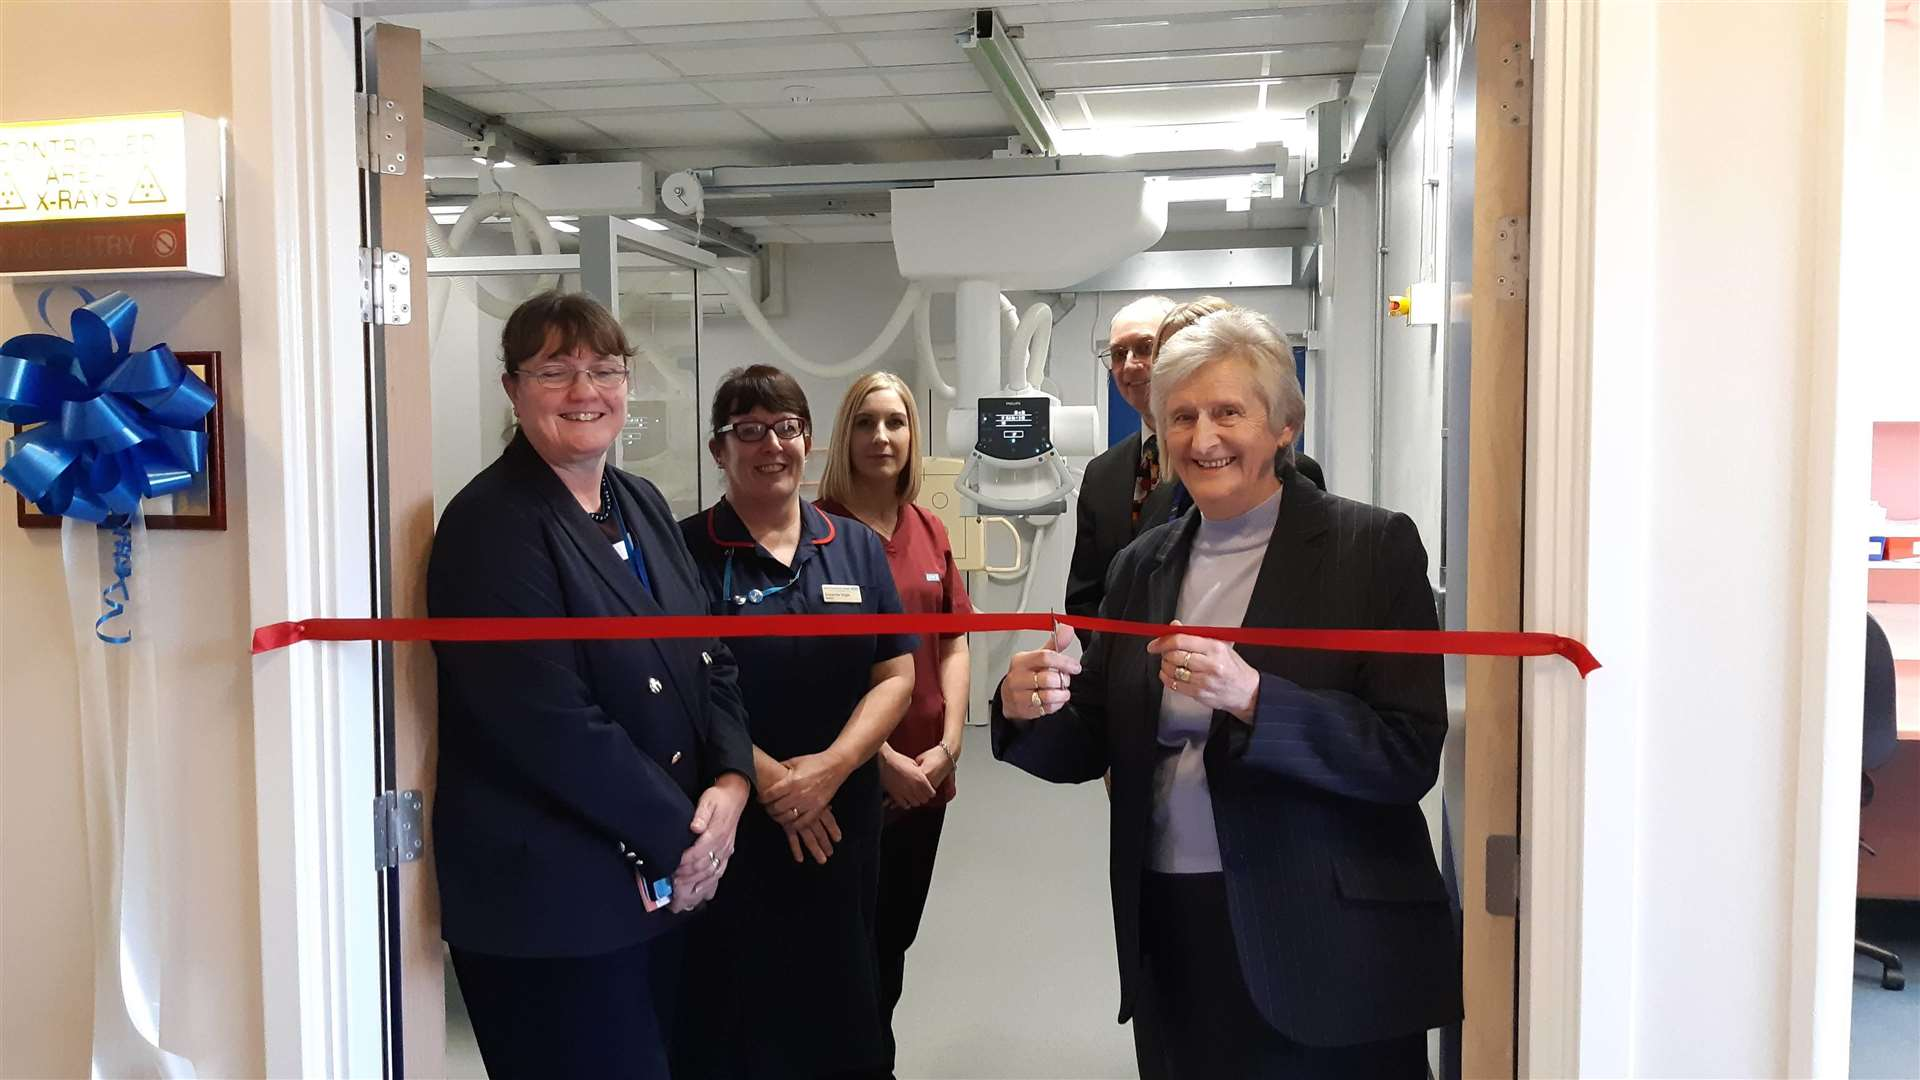 The new X-ray room was opened in memory of the late Maureen Bane (6604653)